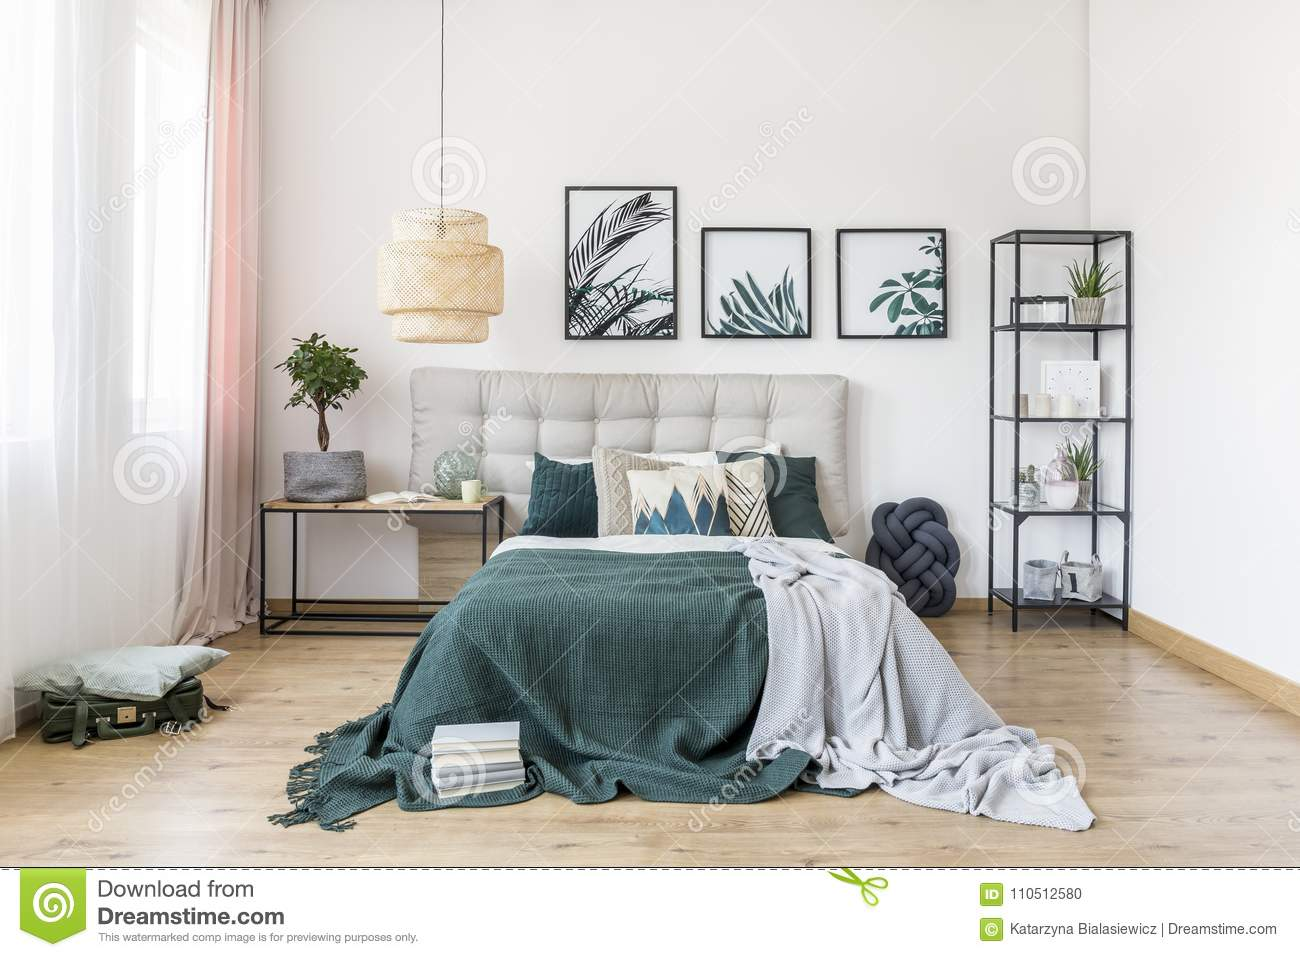 Green Bedroom Interior With Plant Stock Photo - Image of ...